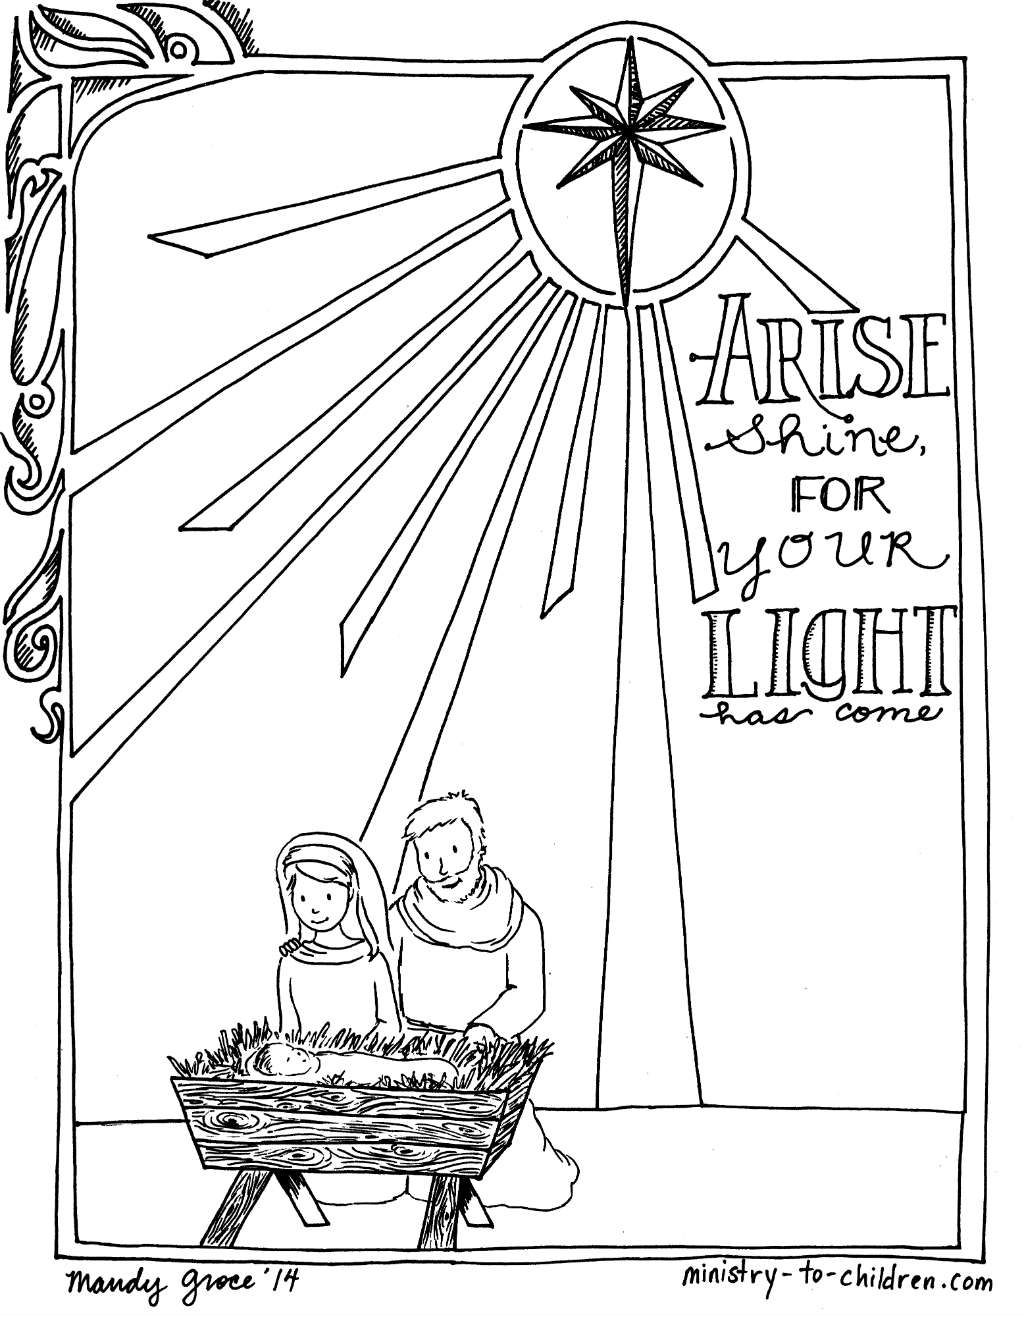 We hope your children will enjoy this nativity scene coloring page ...